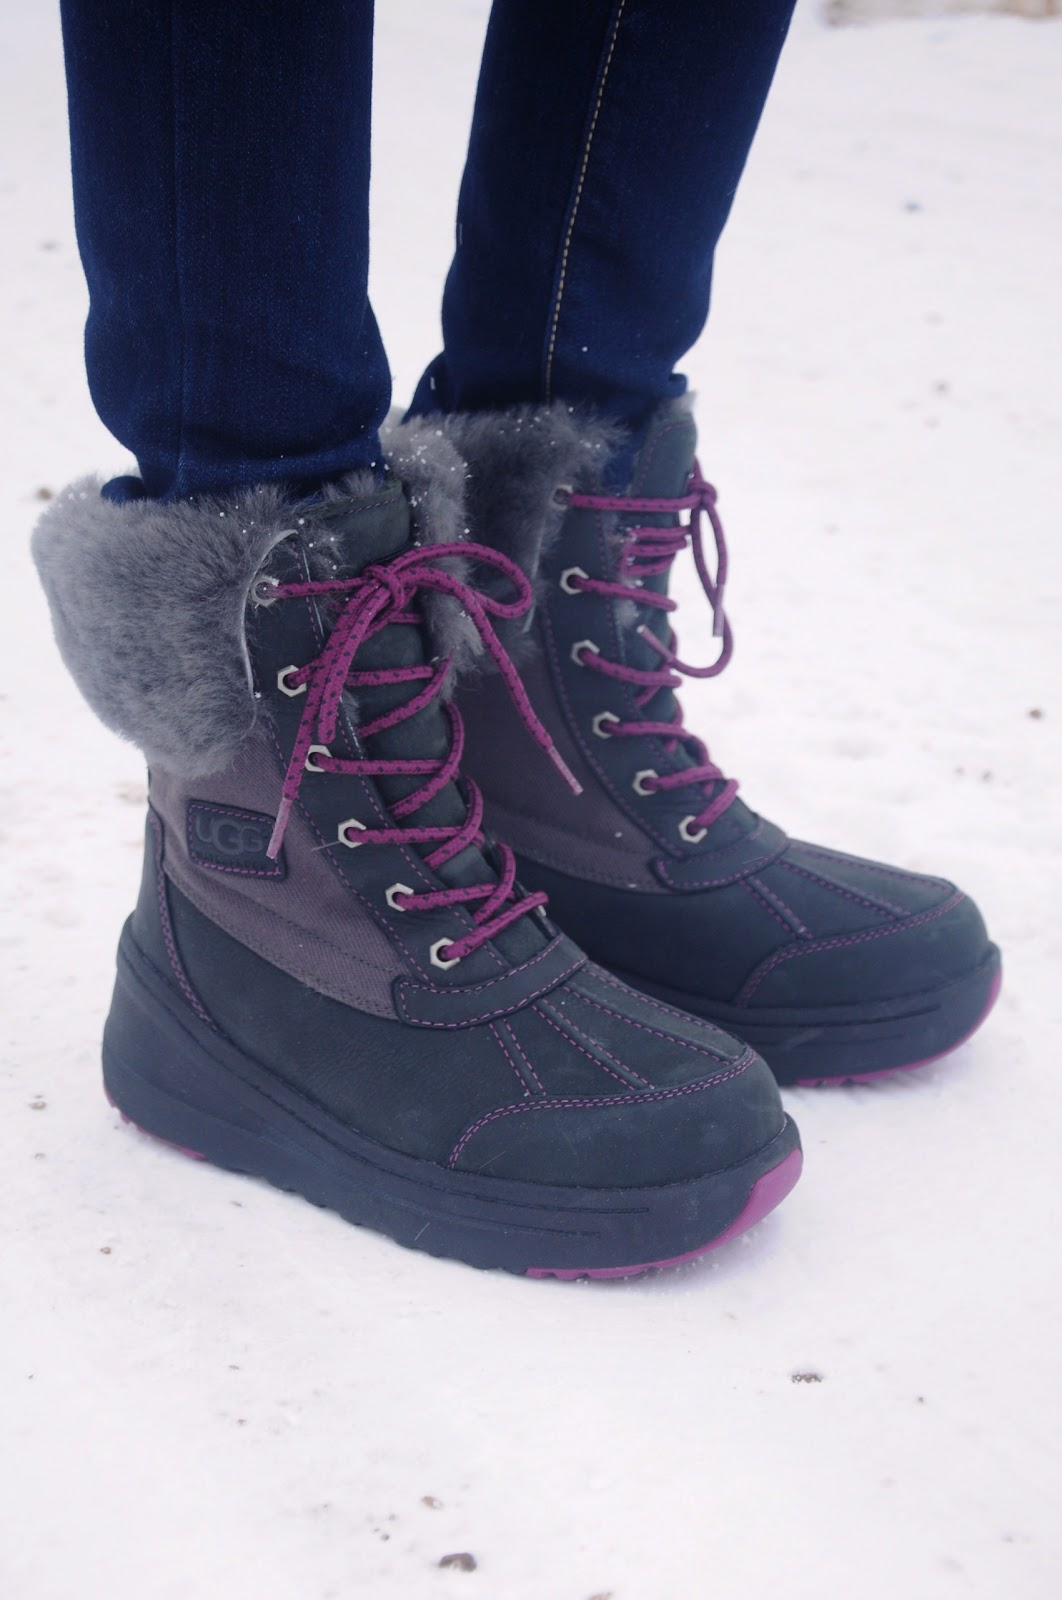 SNOW BOOTS - Wearing the UGG Hoka winter boot » Latter-day